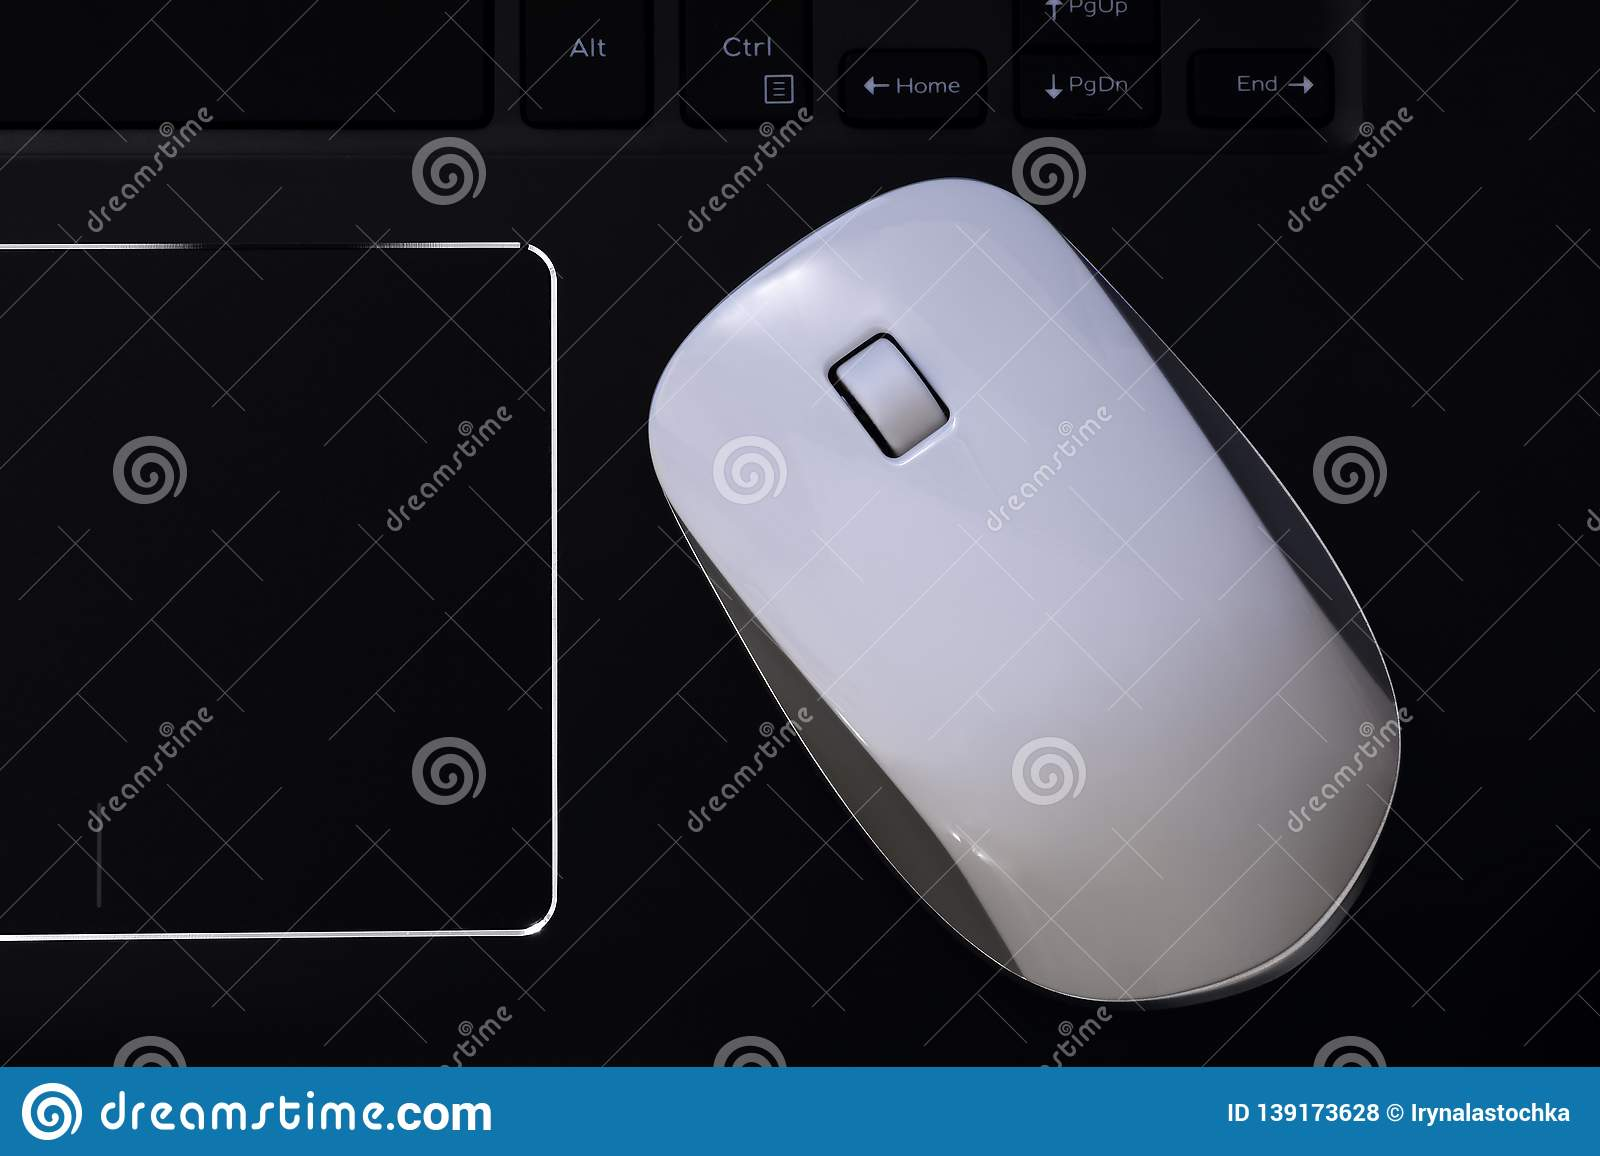 Computer Mouse With Scroll Wheel And Touchpad  PC Mouse For Laptop